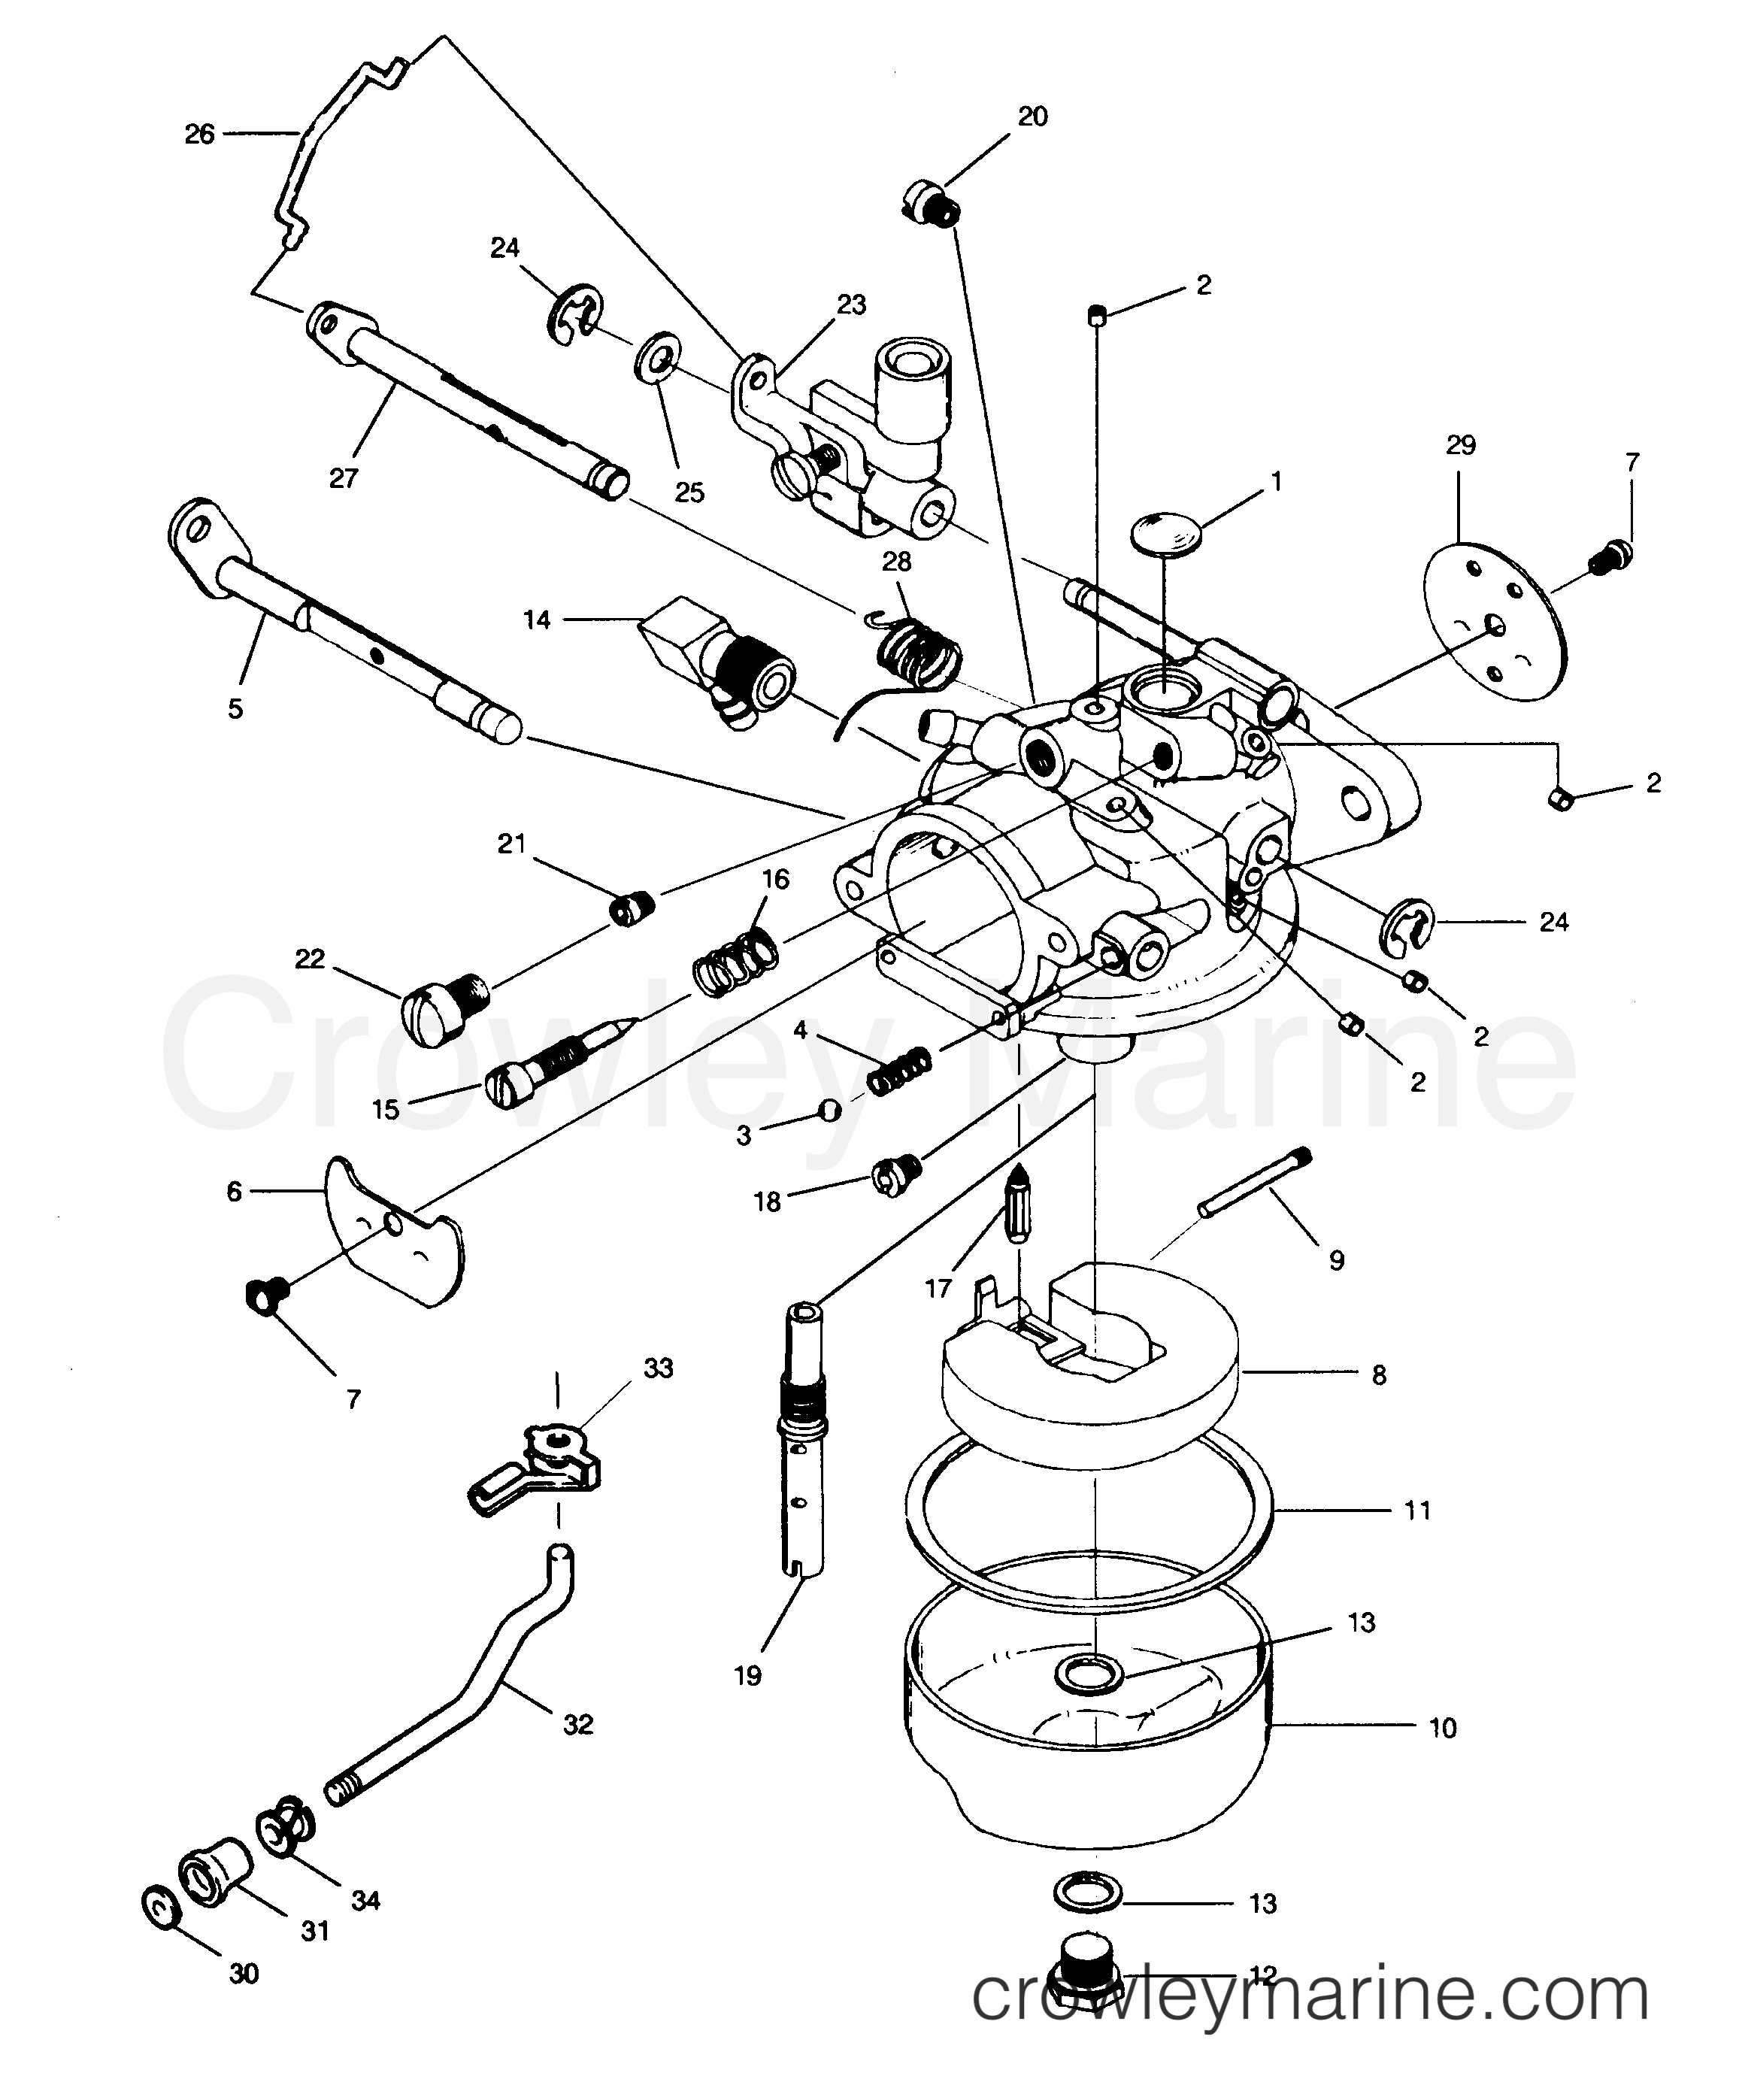 1992 Yamaha Outboard Engine Diagram Electrical Schematics Wiring 2010 Nytro U2022 Honda Cooling System